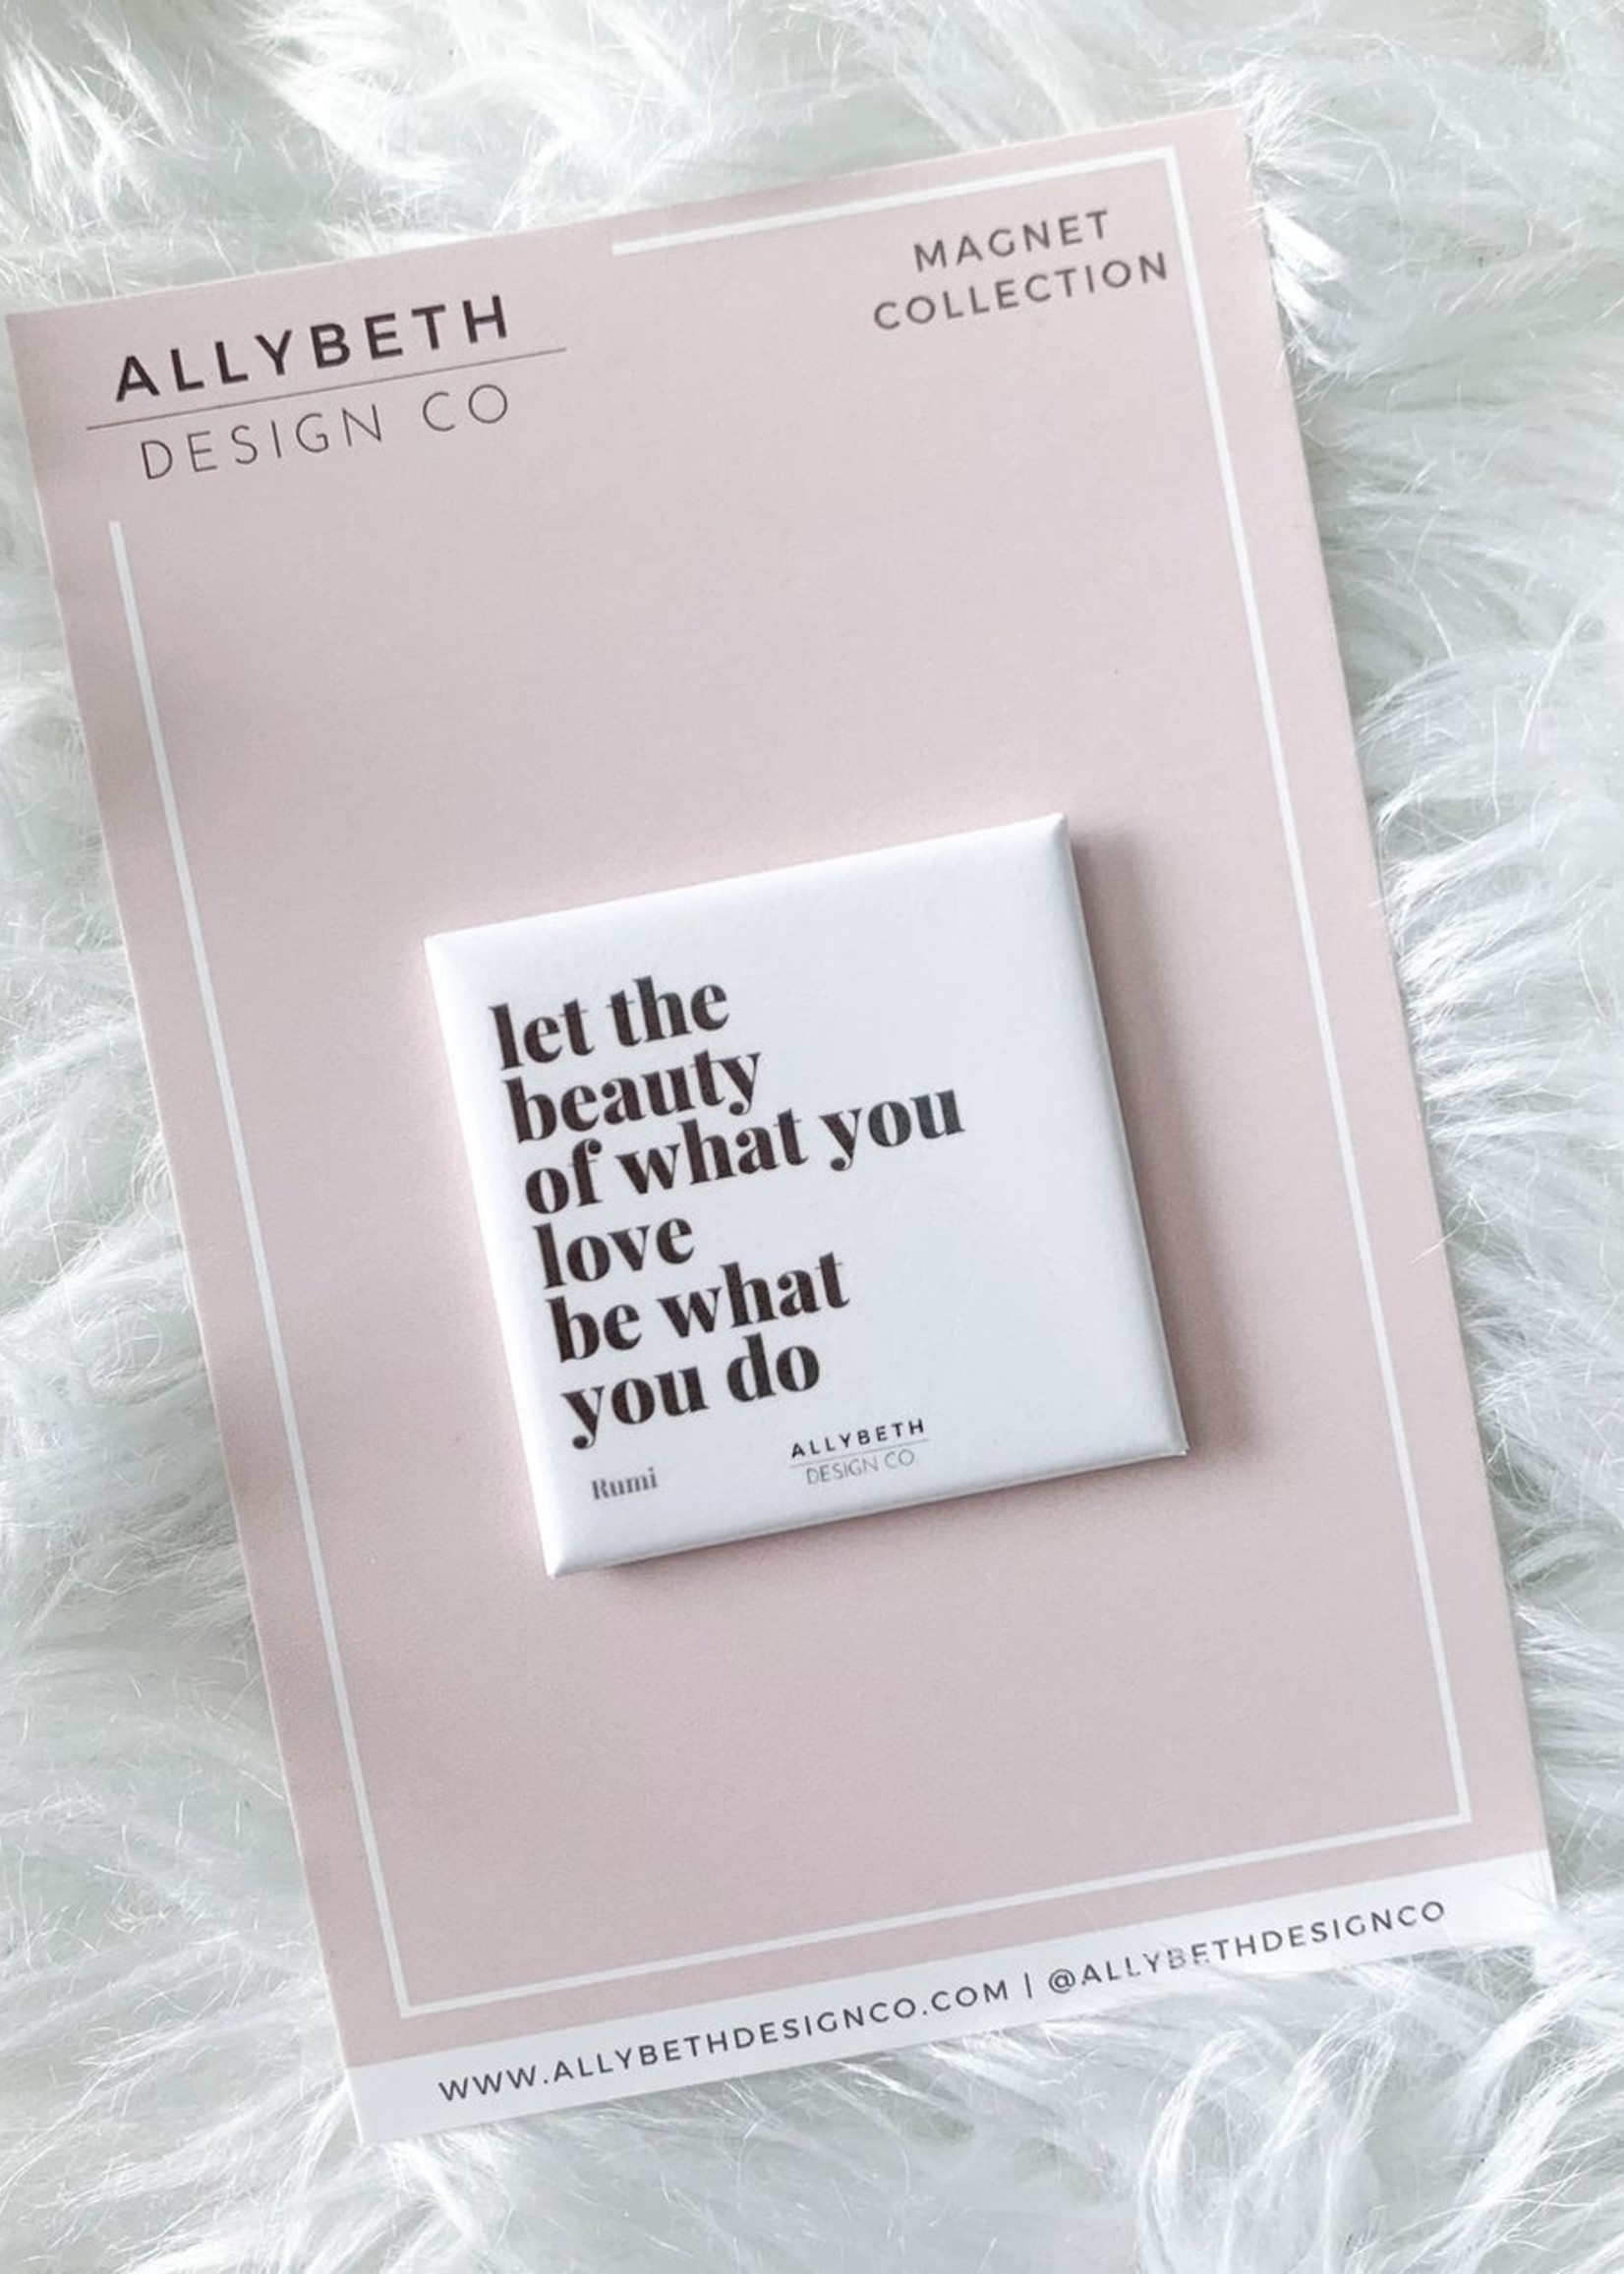 Allybeth Design Co Beauty of What You Love | Magnet